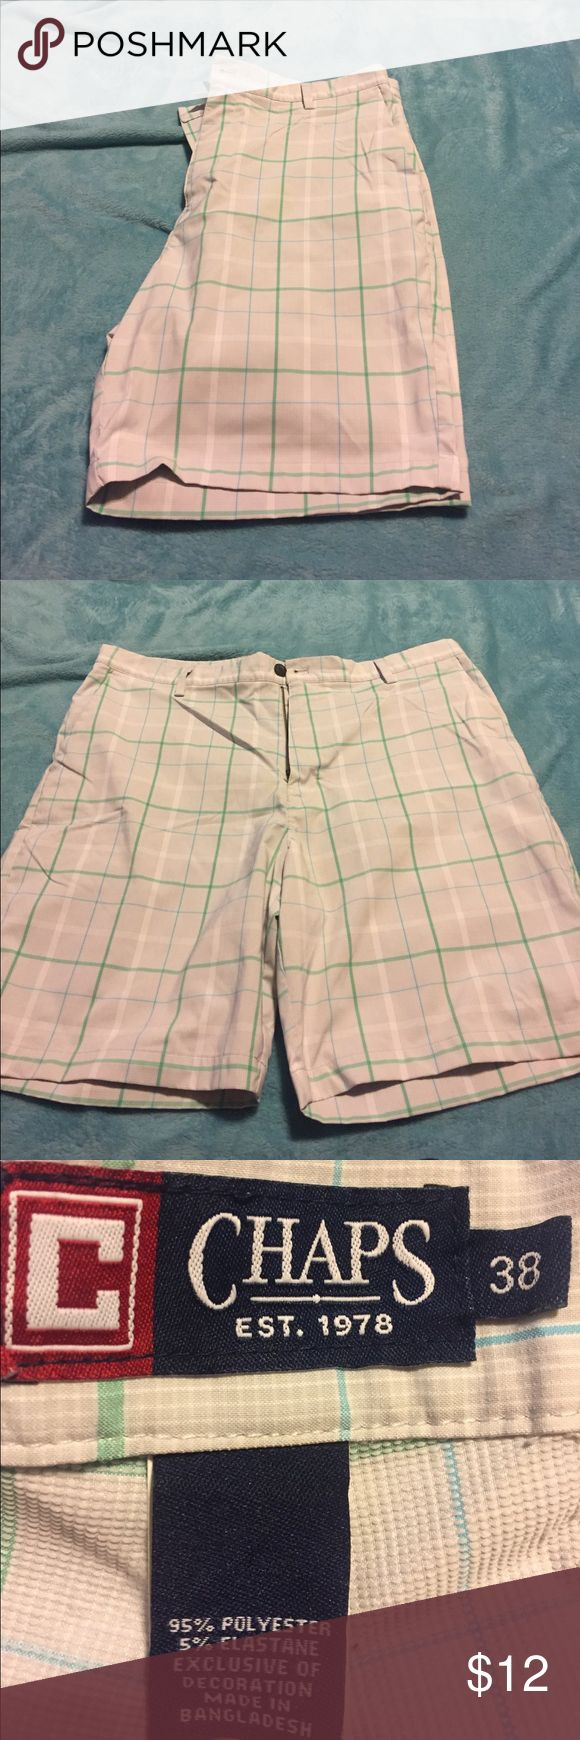 Men's dress shorts Men's dress shorts- CHAPS.    size 38.   Good condition.  Gray blue green material listed in picture Chaps Shorts Flat Front